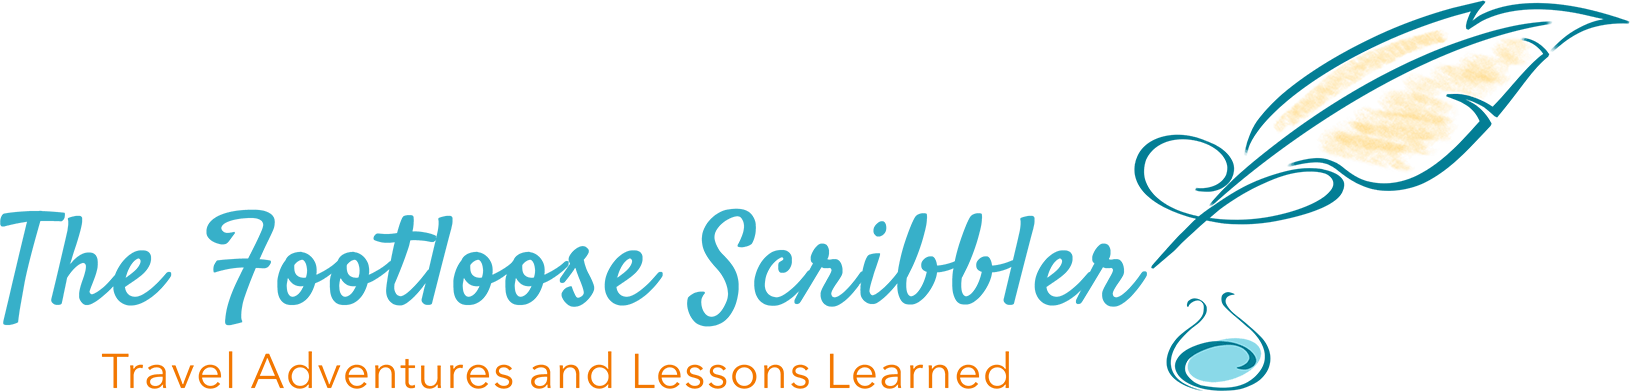 The Footloose Scribbler - Travel Adventures and Lessons Learned